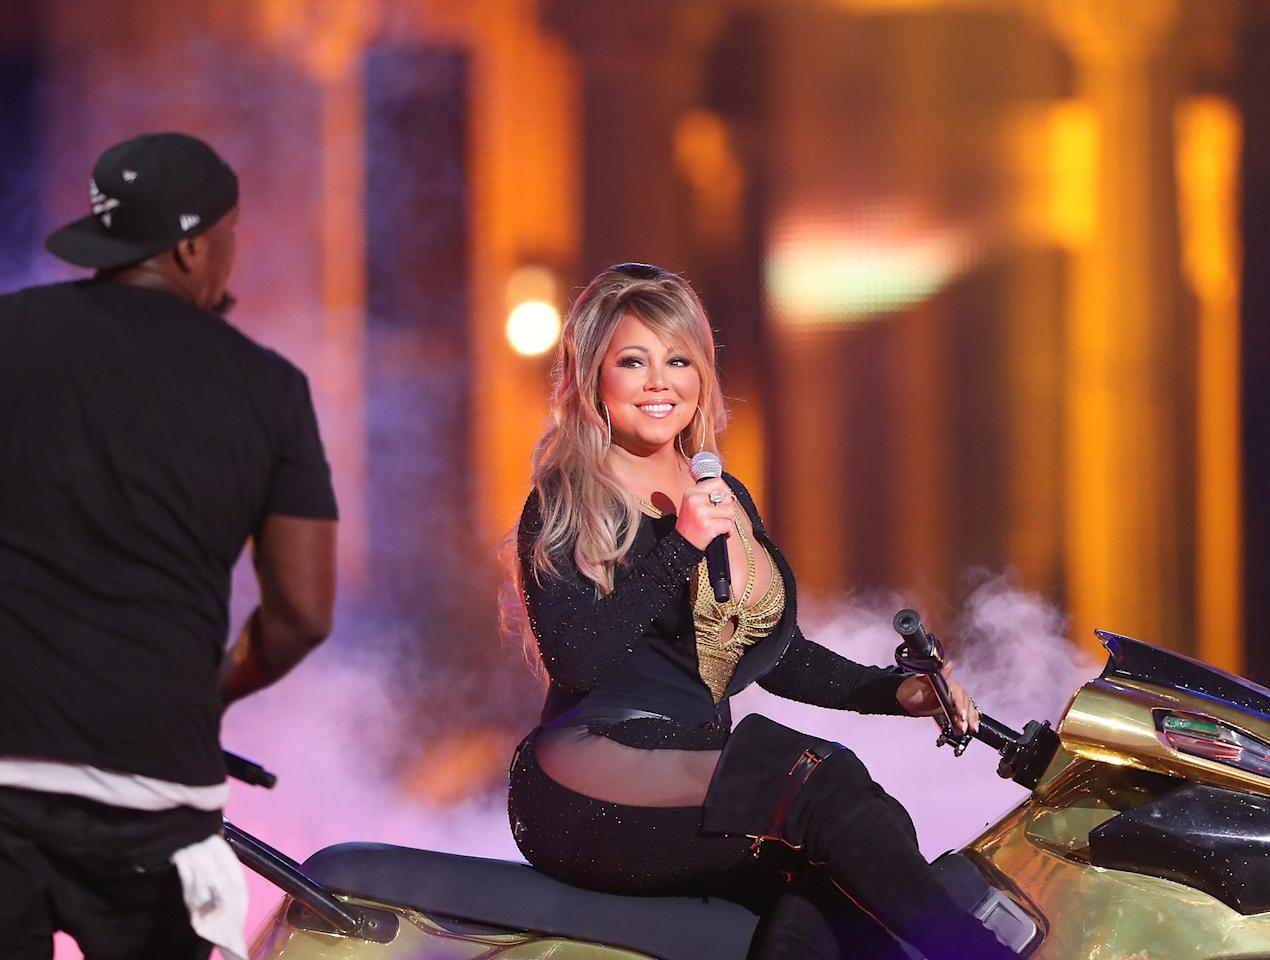 """<p>The singer fumbled her way through three <a rel=""""nofollow"""">painfully awkward performances</a> on Dec. 31, 2016, closing out <em>Dick Clark's New Year's Rockin' Eve with Ryan Seacrest</em> — and the year — on a sour note. Sounds problems plagued Carey's appearance, beginning with her take on the New Year's Eve classic """"Auld Lang Syne."""" Seconds into that number, it became clear Carey could not hear the backup vocals heard on the live broadcast, causing her to get flustered.  """"I used to get upset by things,"""" she told <a rel=""""nofollow""""><em>Rolling Stone</em></a> of the performance. """"This was out of my control, and had everything not been such a total chaotic mess, then I would have been able to make something happen. Even the dancers should have stopped dancing and helped me off the f---ing stage. I'm sorry. It was a mess, and I blame everybody, and I blame myself for not leaving after rehearsal.""""</p>"""